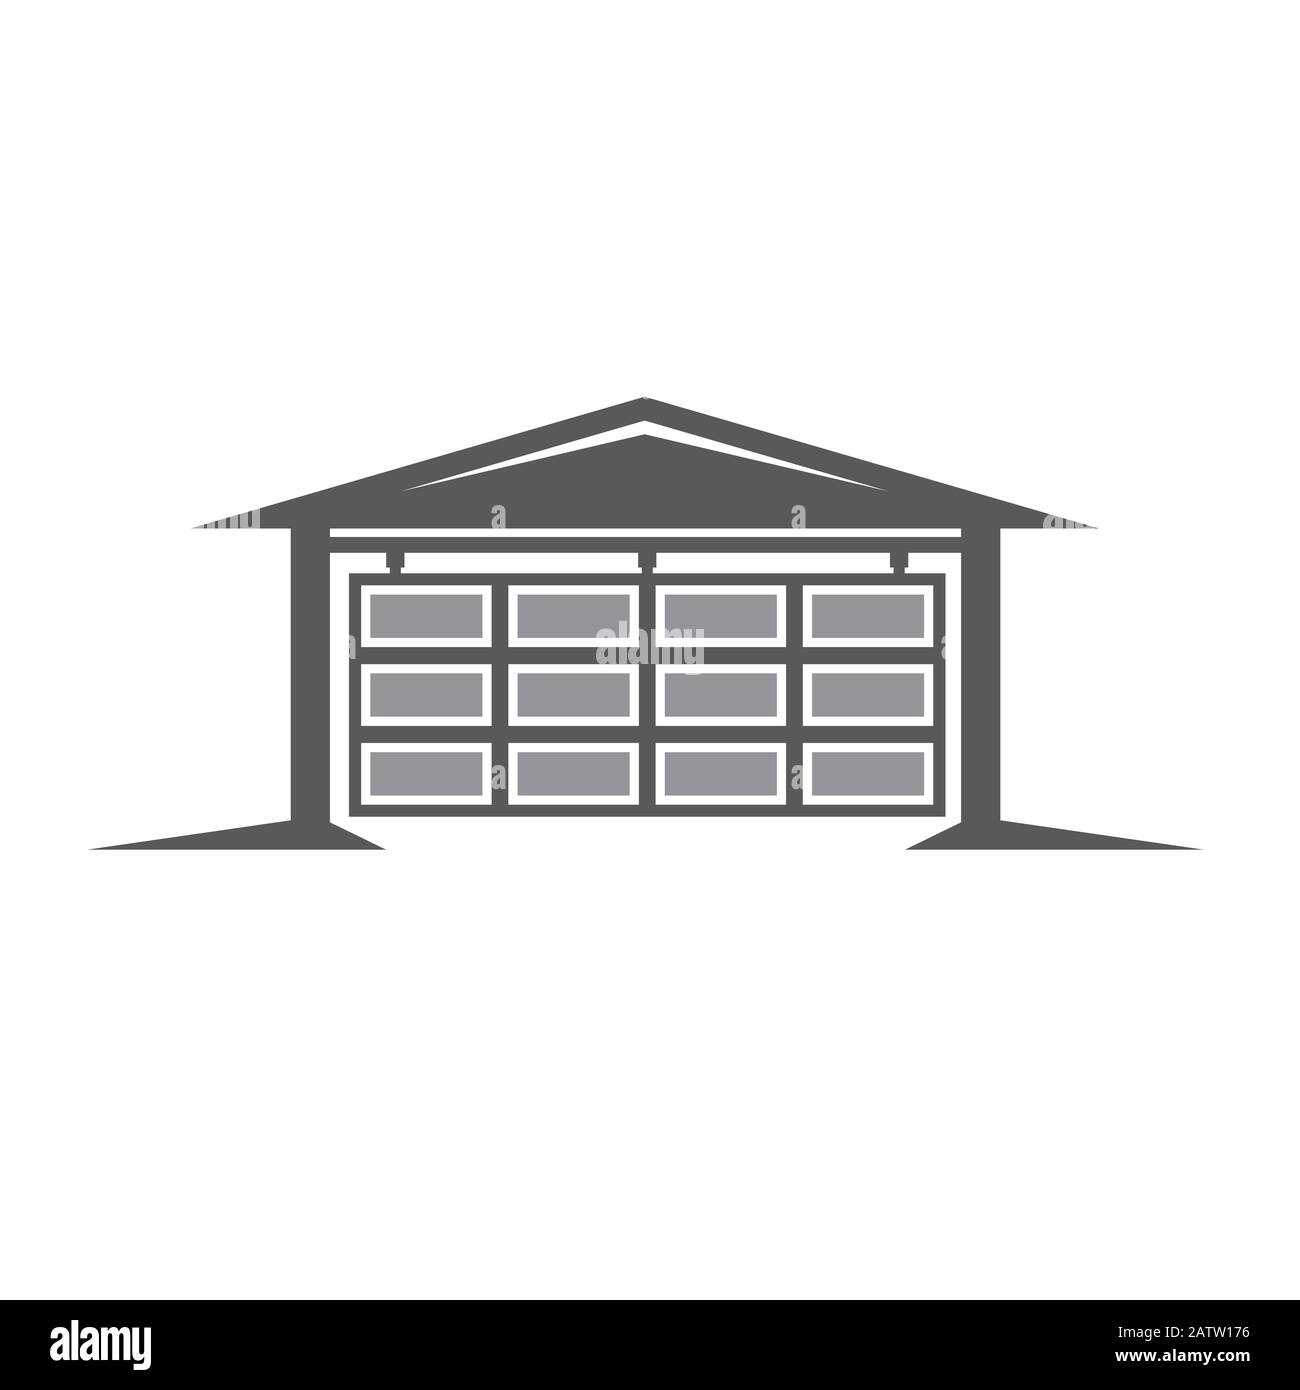 Flat Roof Garage High Resolution Stock Photography And Images Alamy